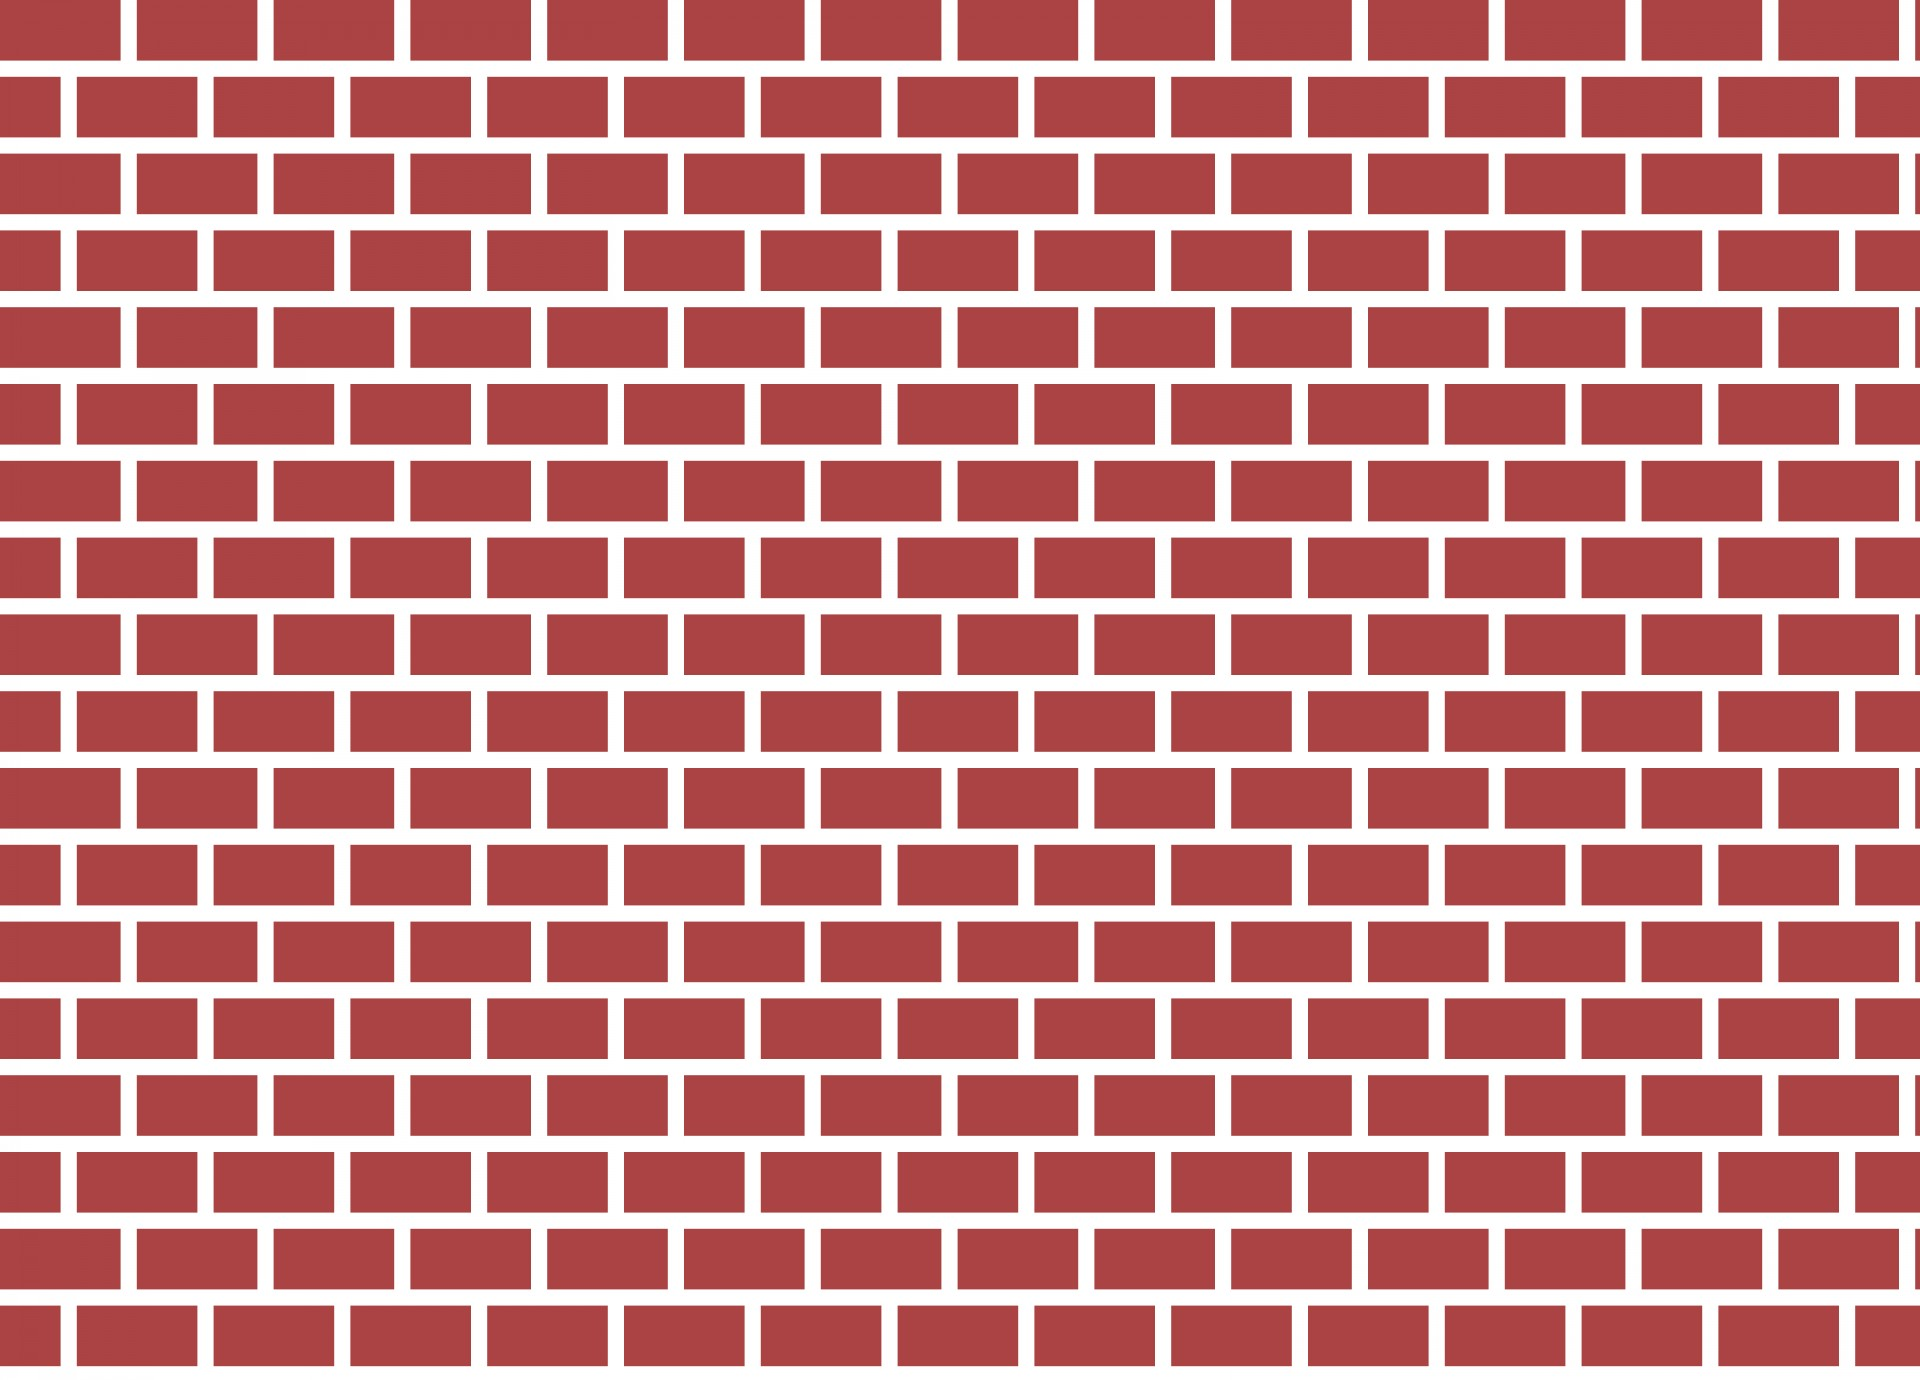 Red Brick Wall Clipart Free Stock Photo.